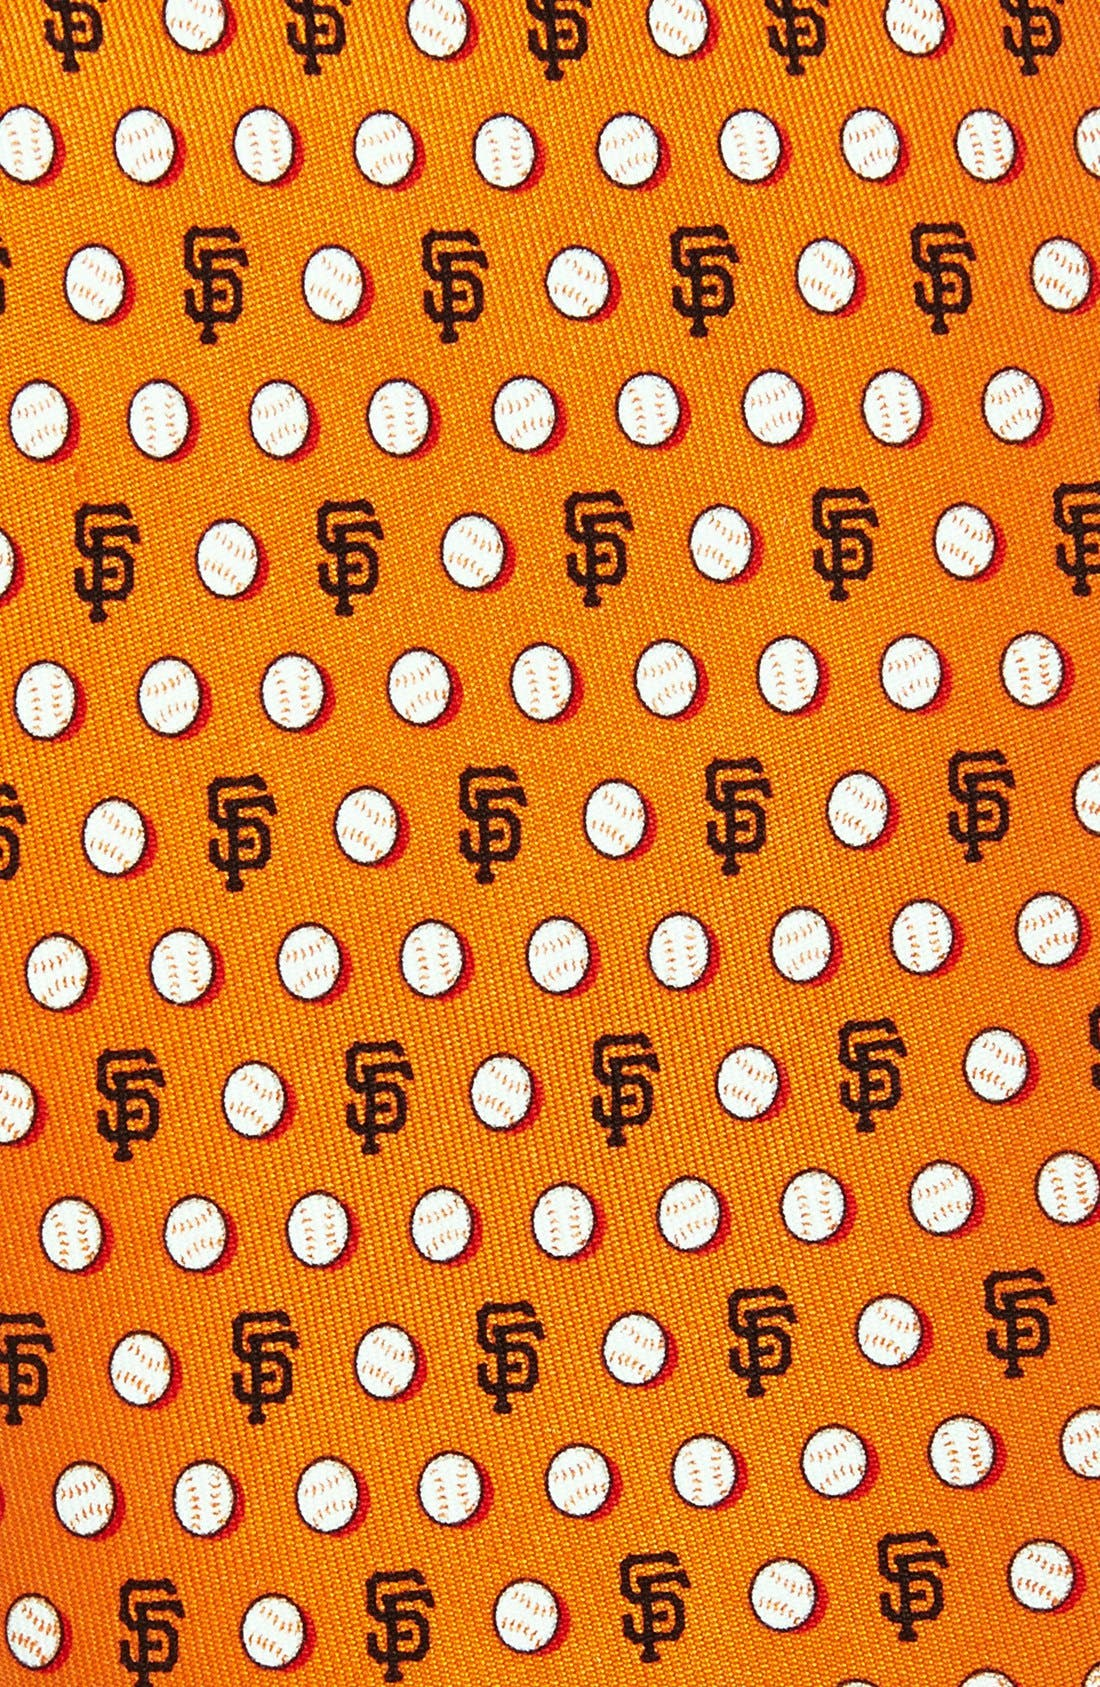 'San Francisco Giants - MLB' Woven Silk Tie,                             Alternate thumbnail 2, color,                             800